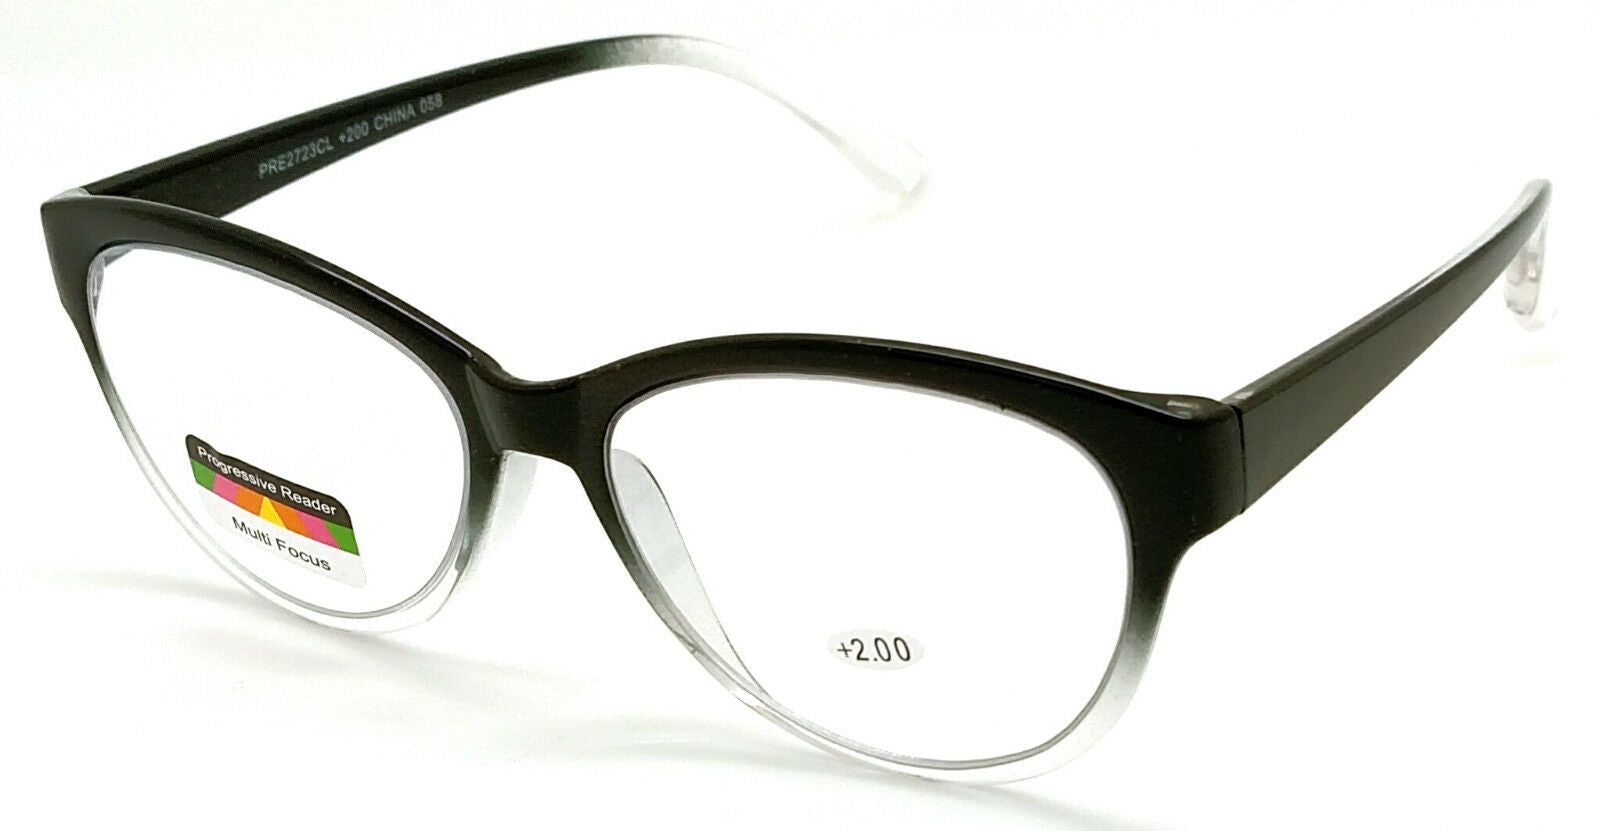 THRICE Vision Multi-Focus Progressive Reading Glass Cat Eye